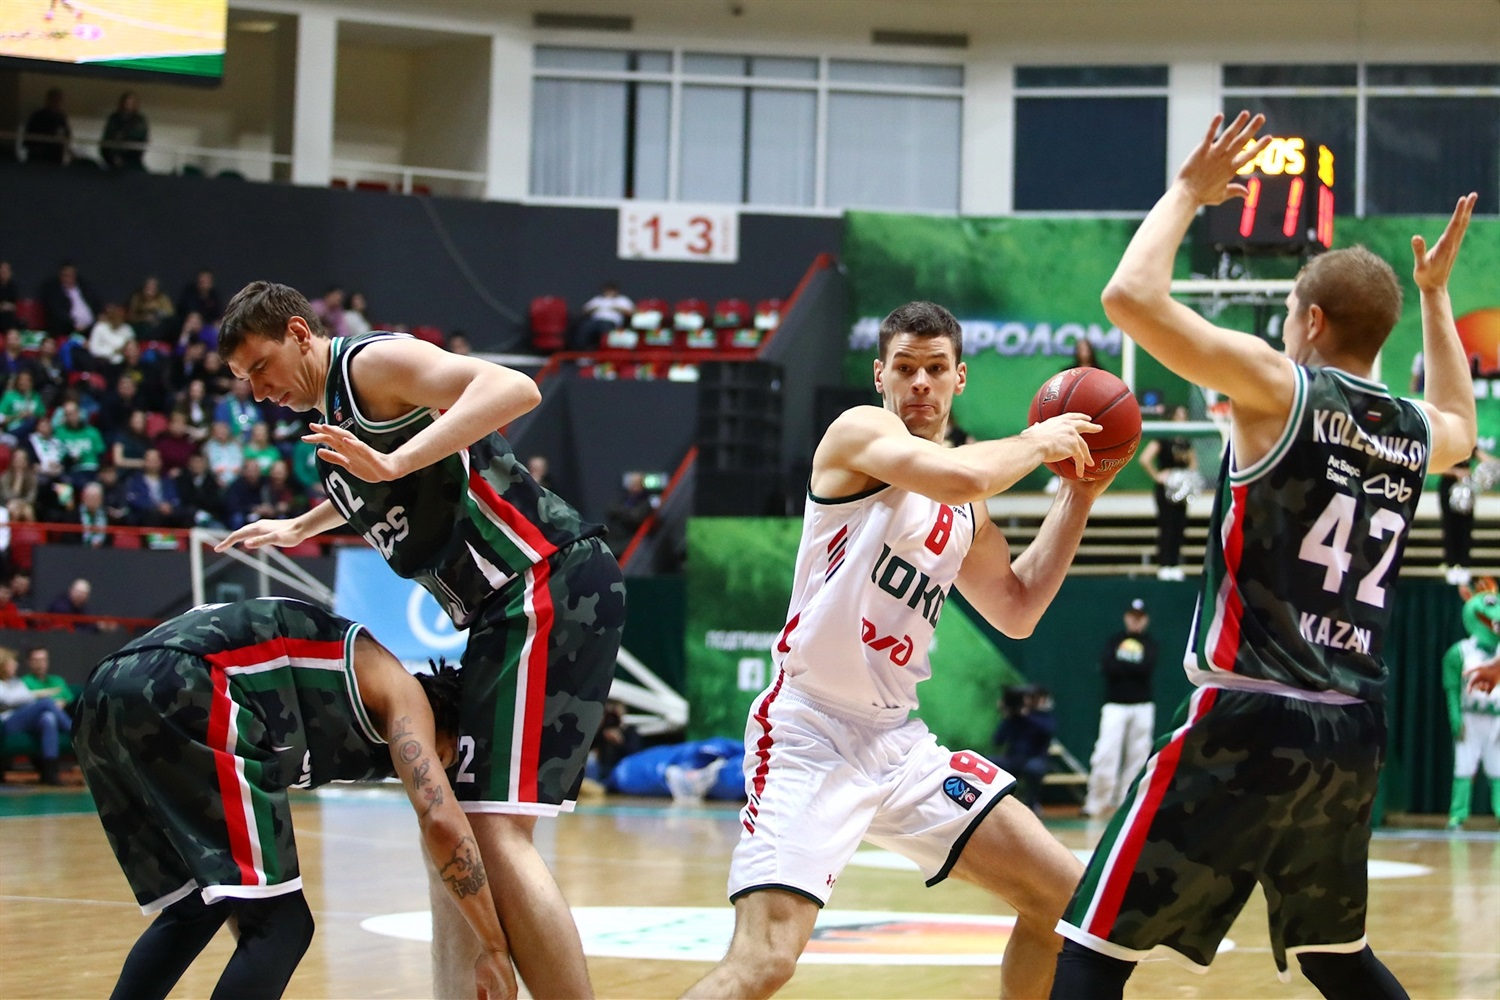 Dragan Apic - Lokomotiv Kuban Krasnodar (photo UNICS) - EC18